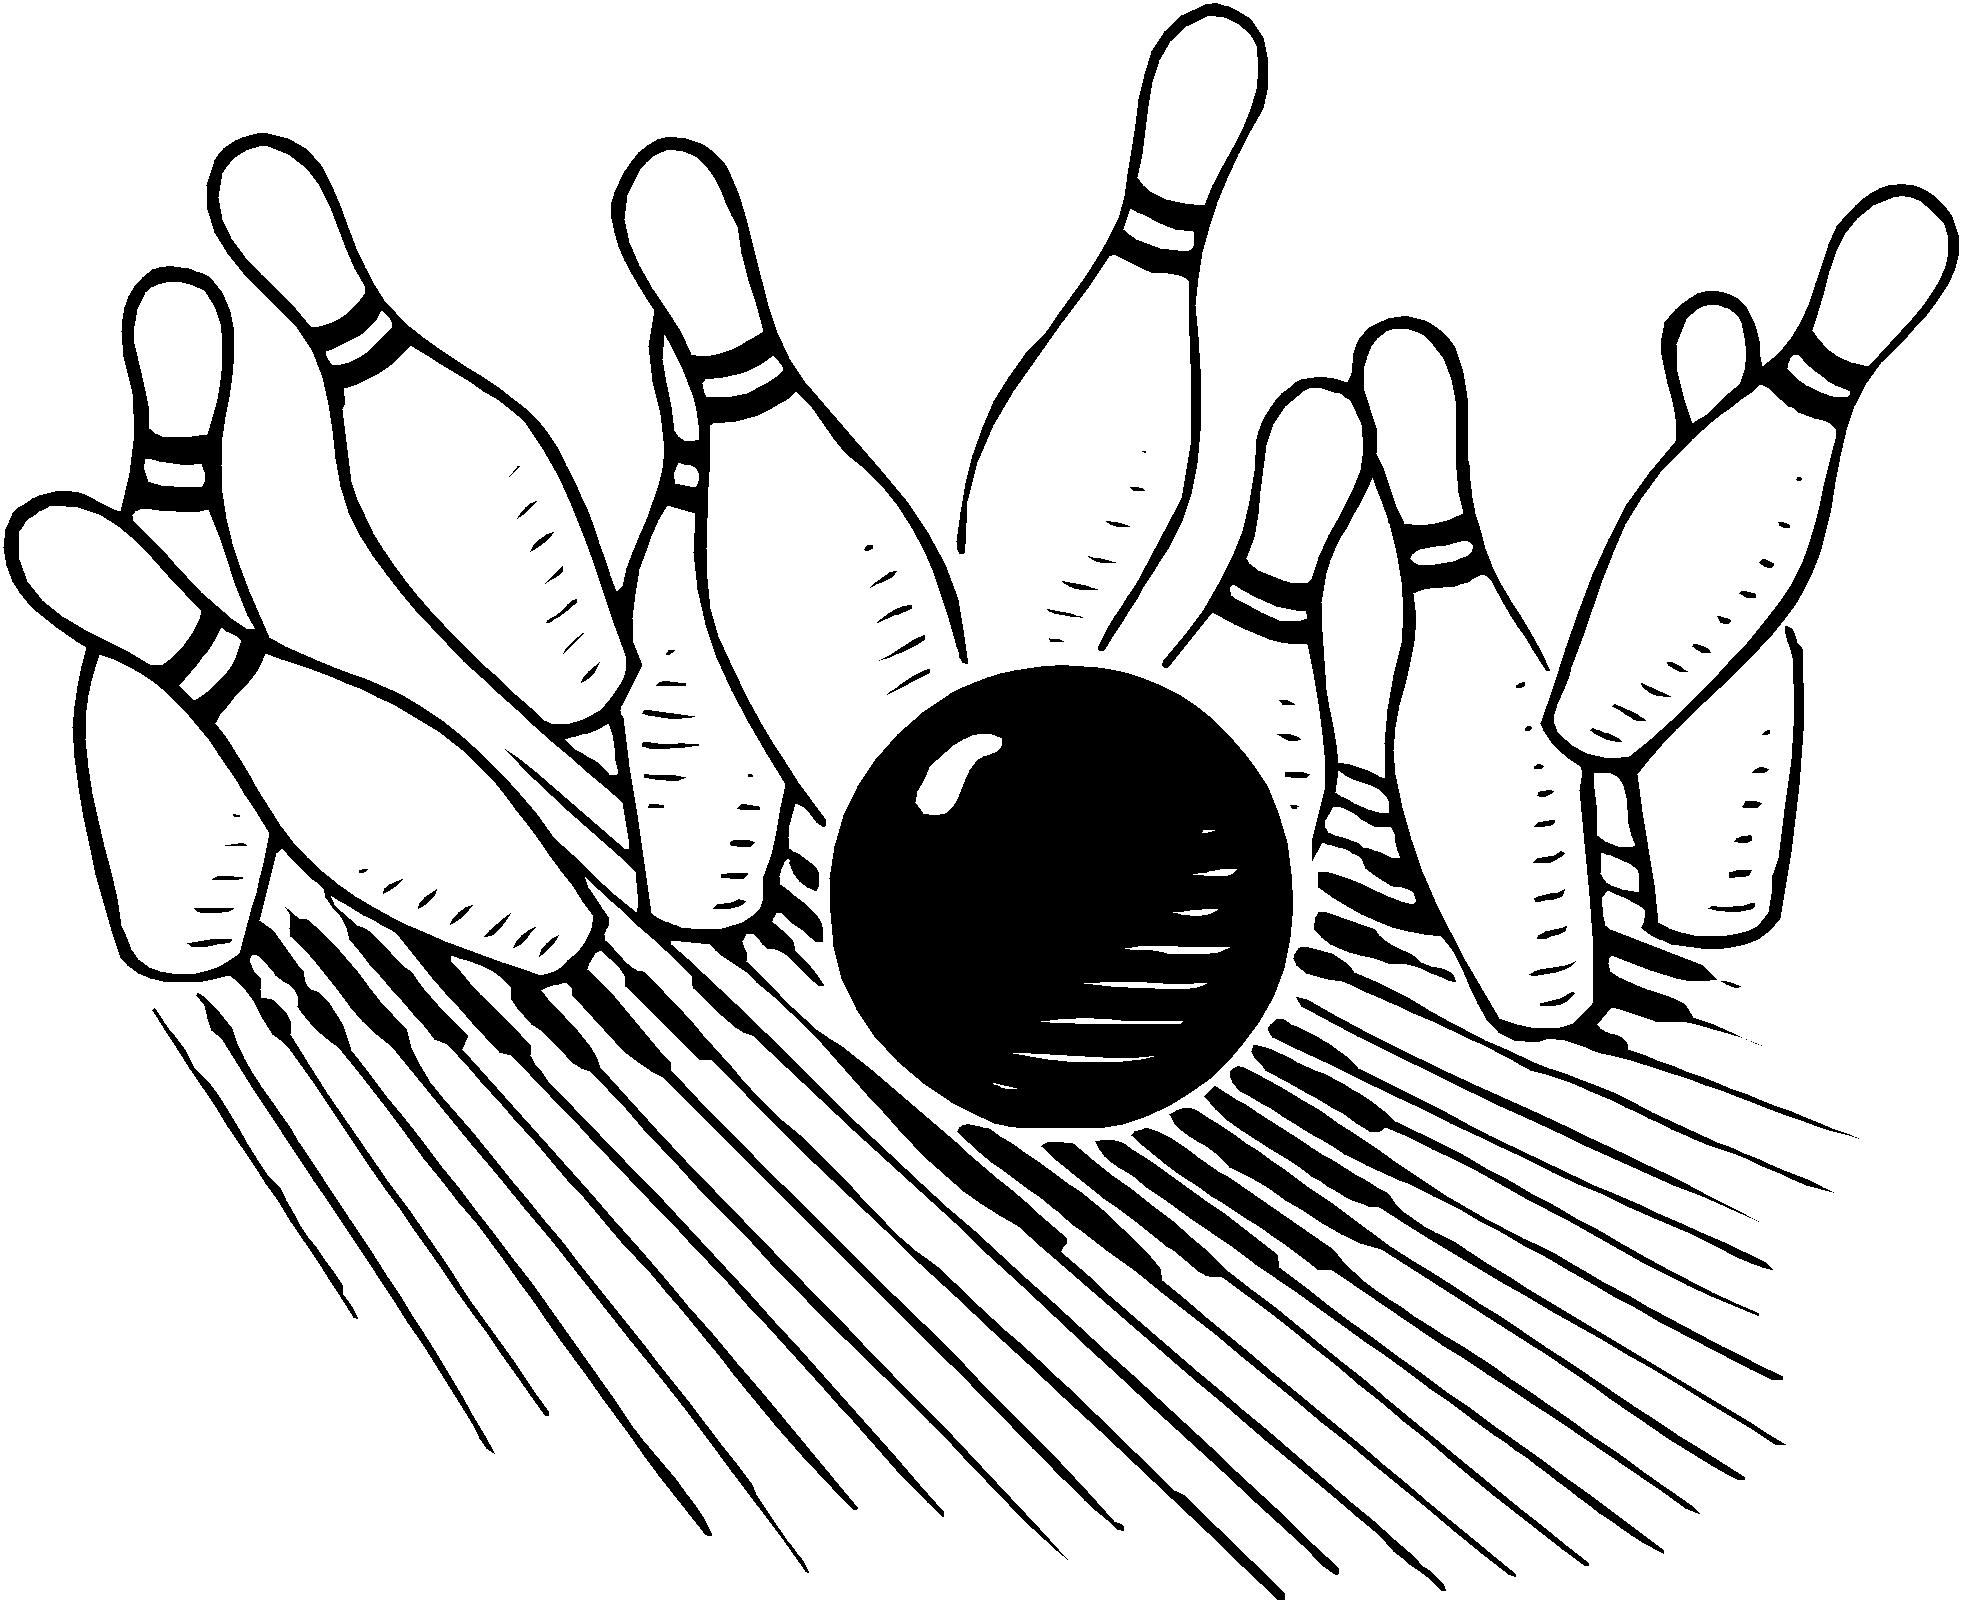 Bowling ball with flames and pins clipart black and white freeuse download Bowling clipart clipart cliparts for you | Bowling | Bowling outfit ... freeuse download